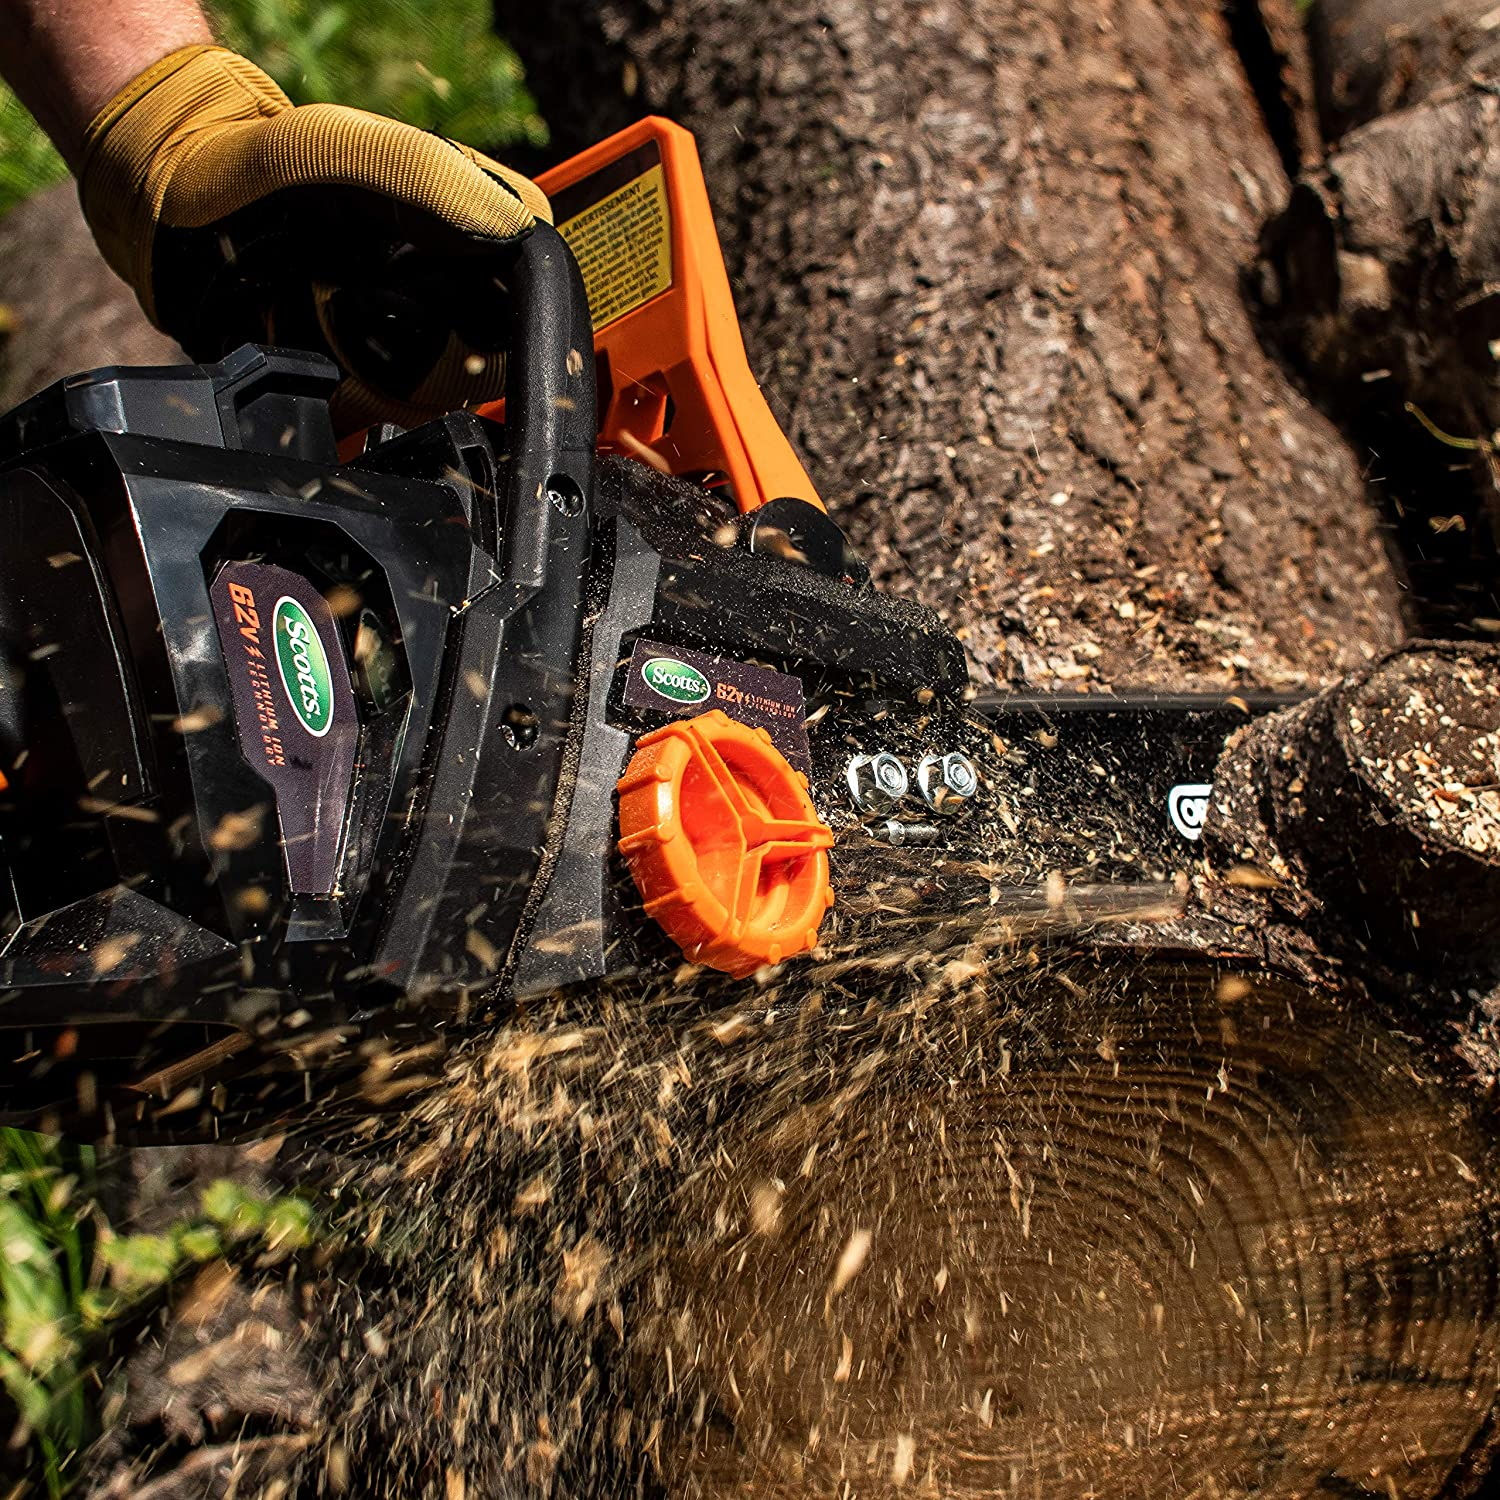 Scotts Outdoor Power Tools LCS31662S Chainsaws product image 8